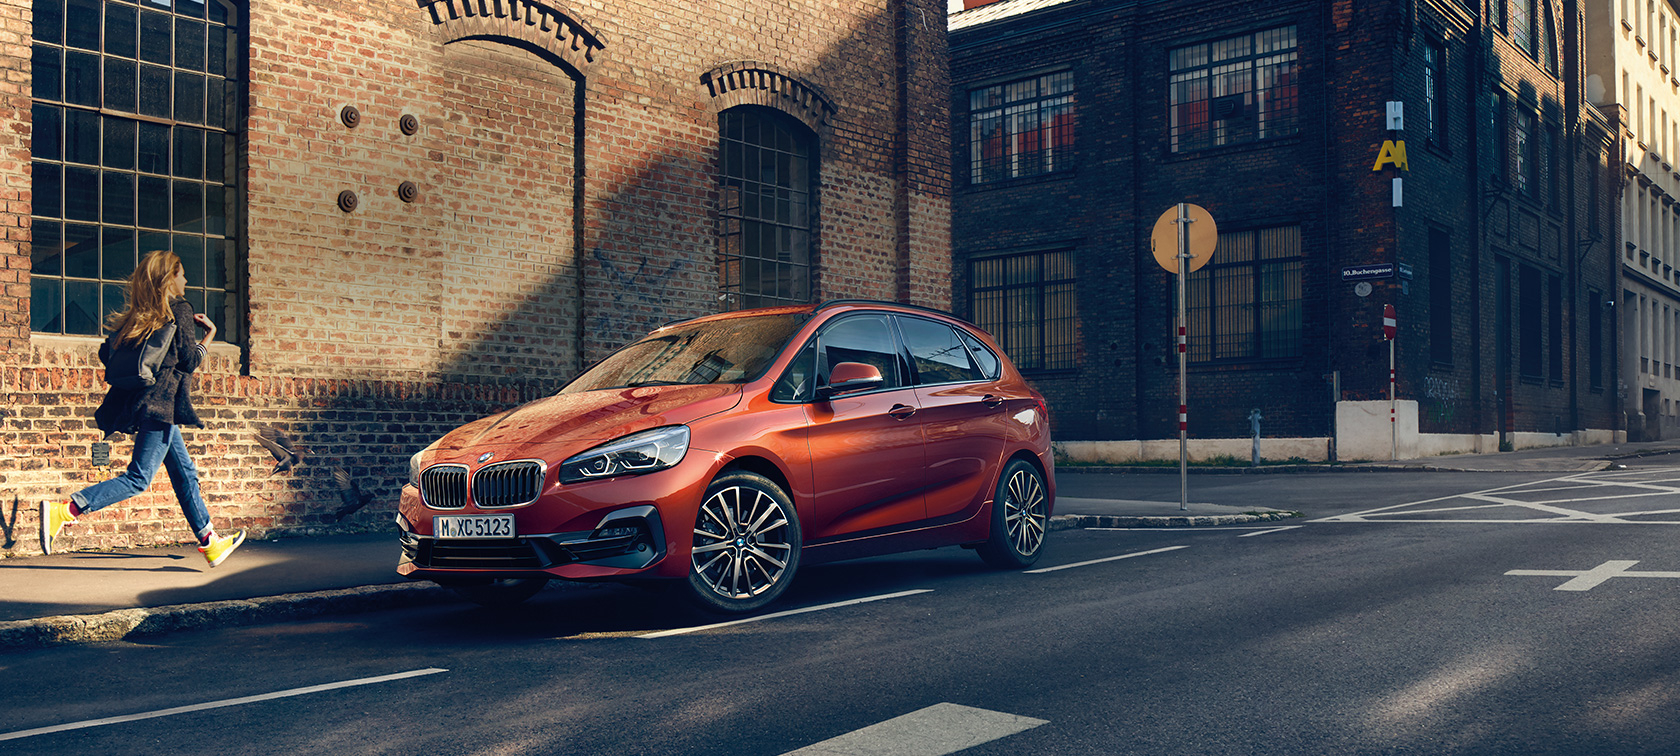 Nuevo BMW Serie 2 Active Tourer F45 2018 Sunset Orange metalizado, vista de tres cuartos frontal, aparcado en la calle